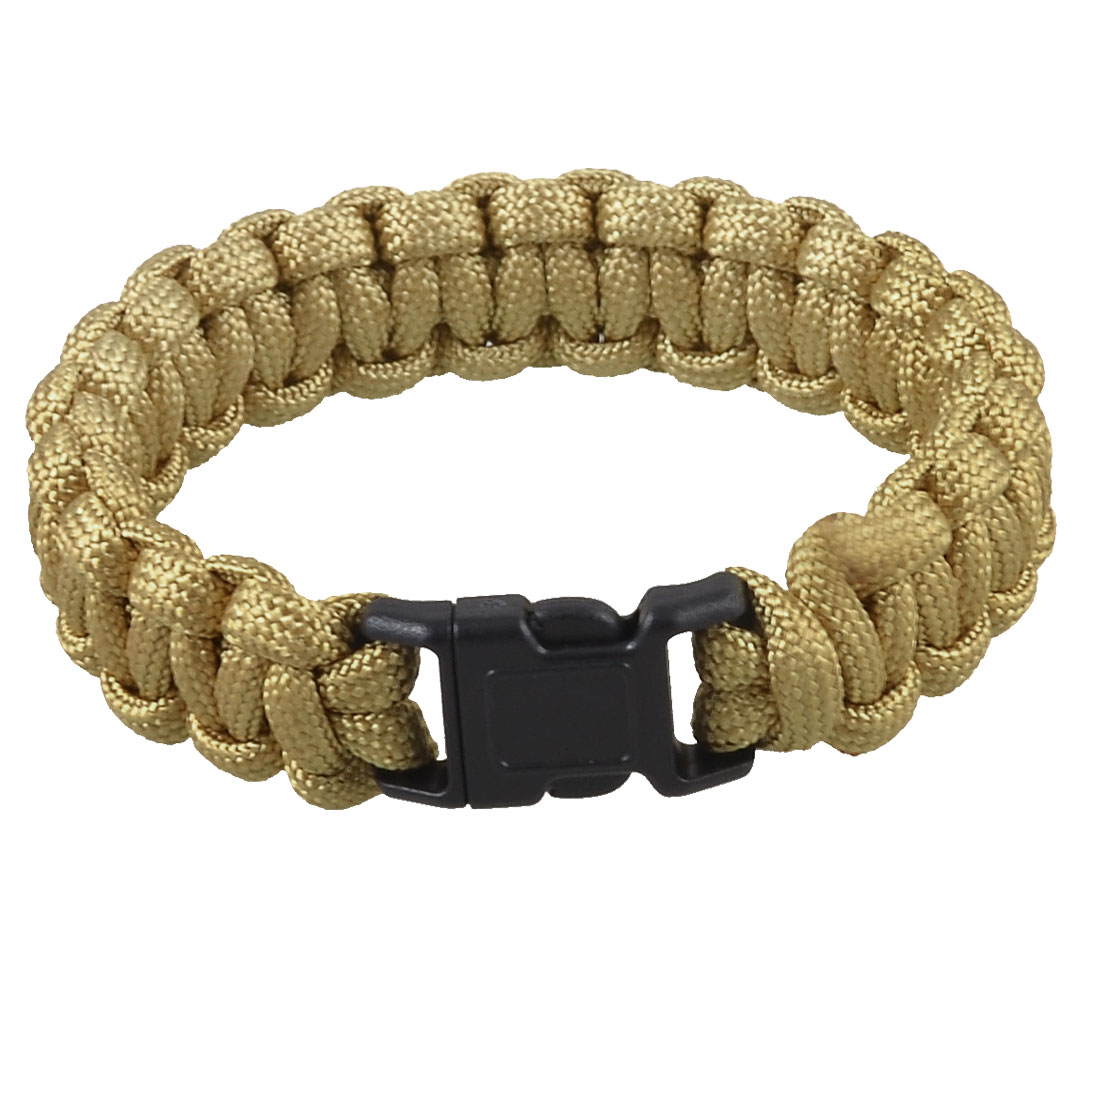 Camping Hiking Side Release Buckle Parachute Cord Survival Bracelet Khaki 220Lbs